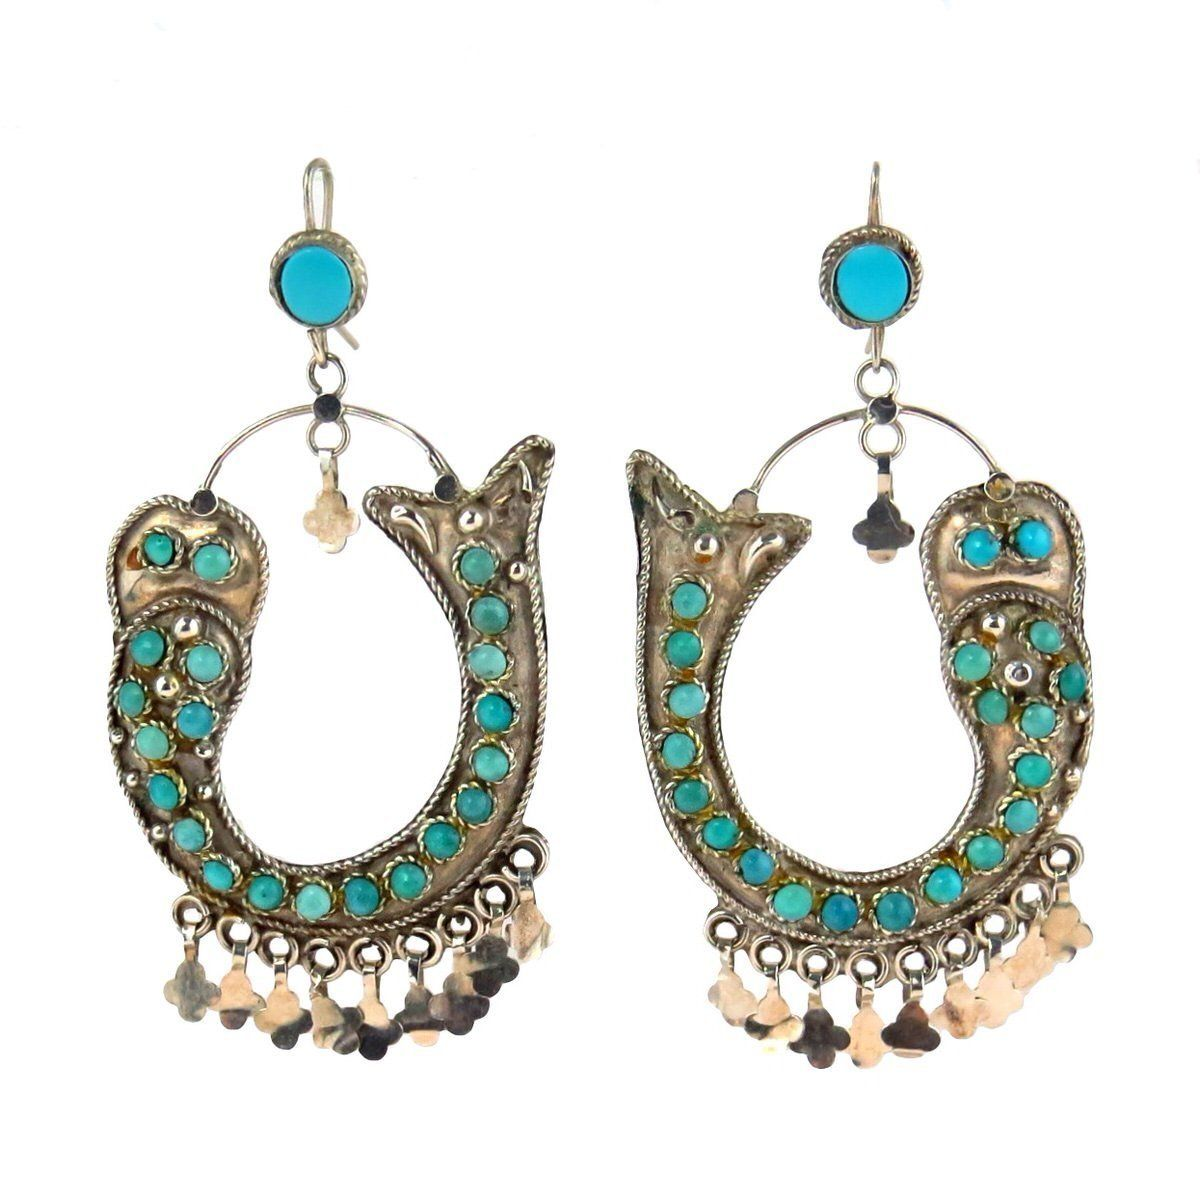 3edae3ed5 Vintage Chinese Earrings Silver Turquoise Fish, Vintage, 1930s to 1980s ✨  Only one at